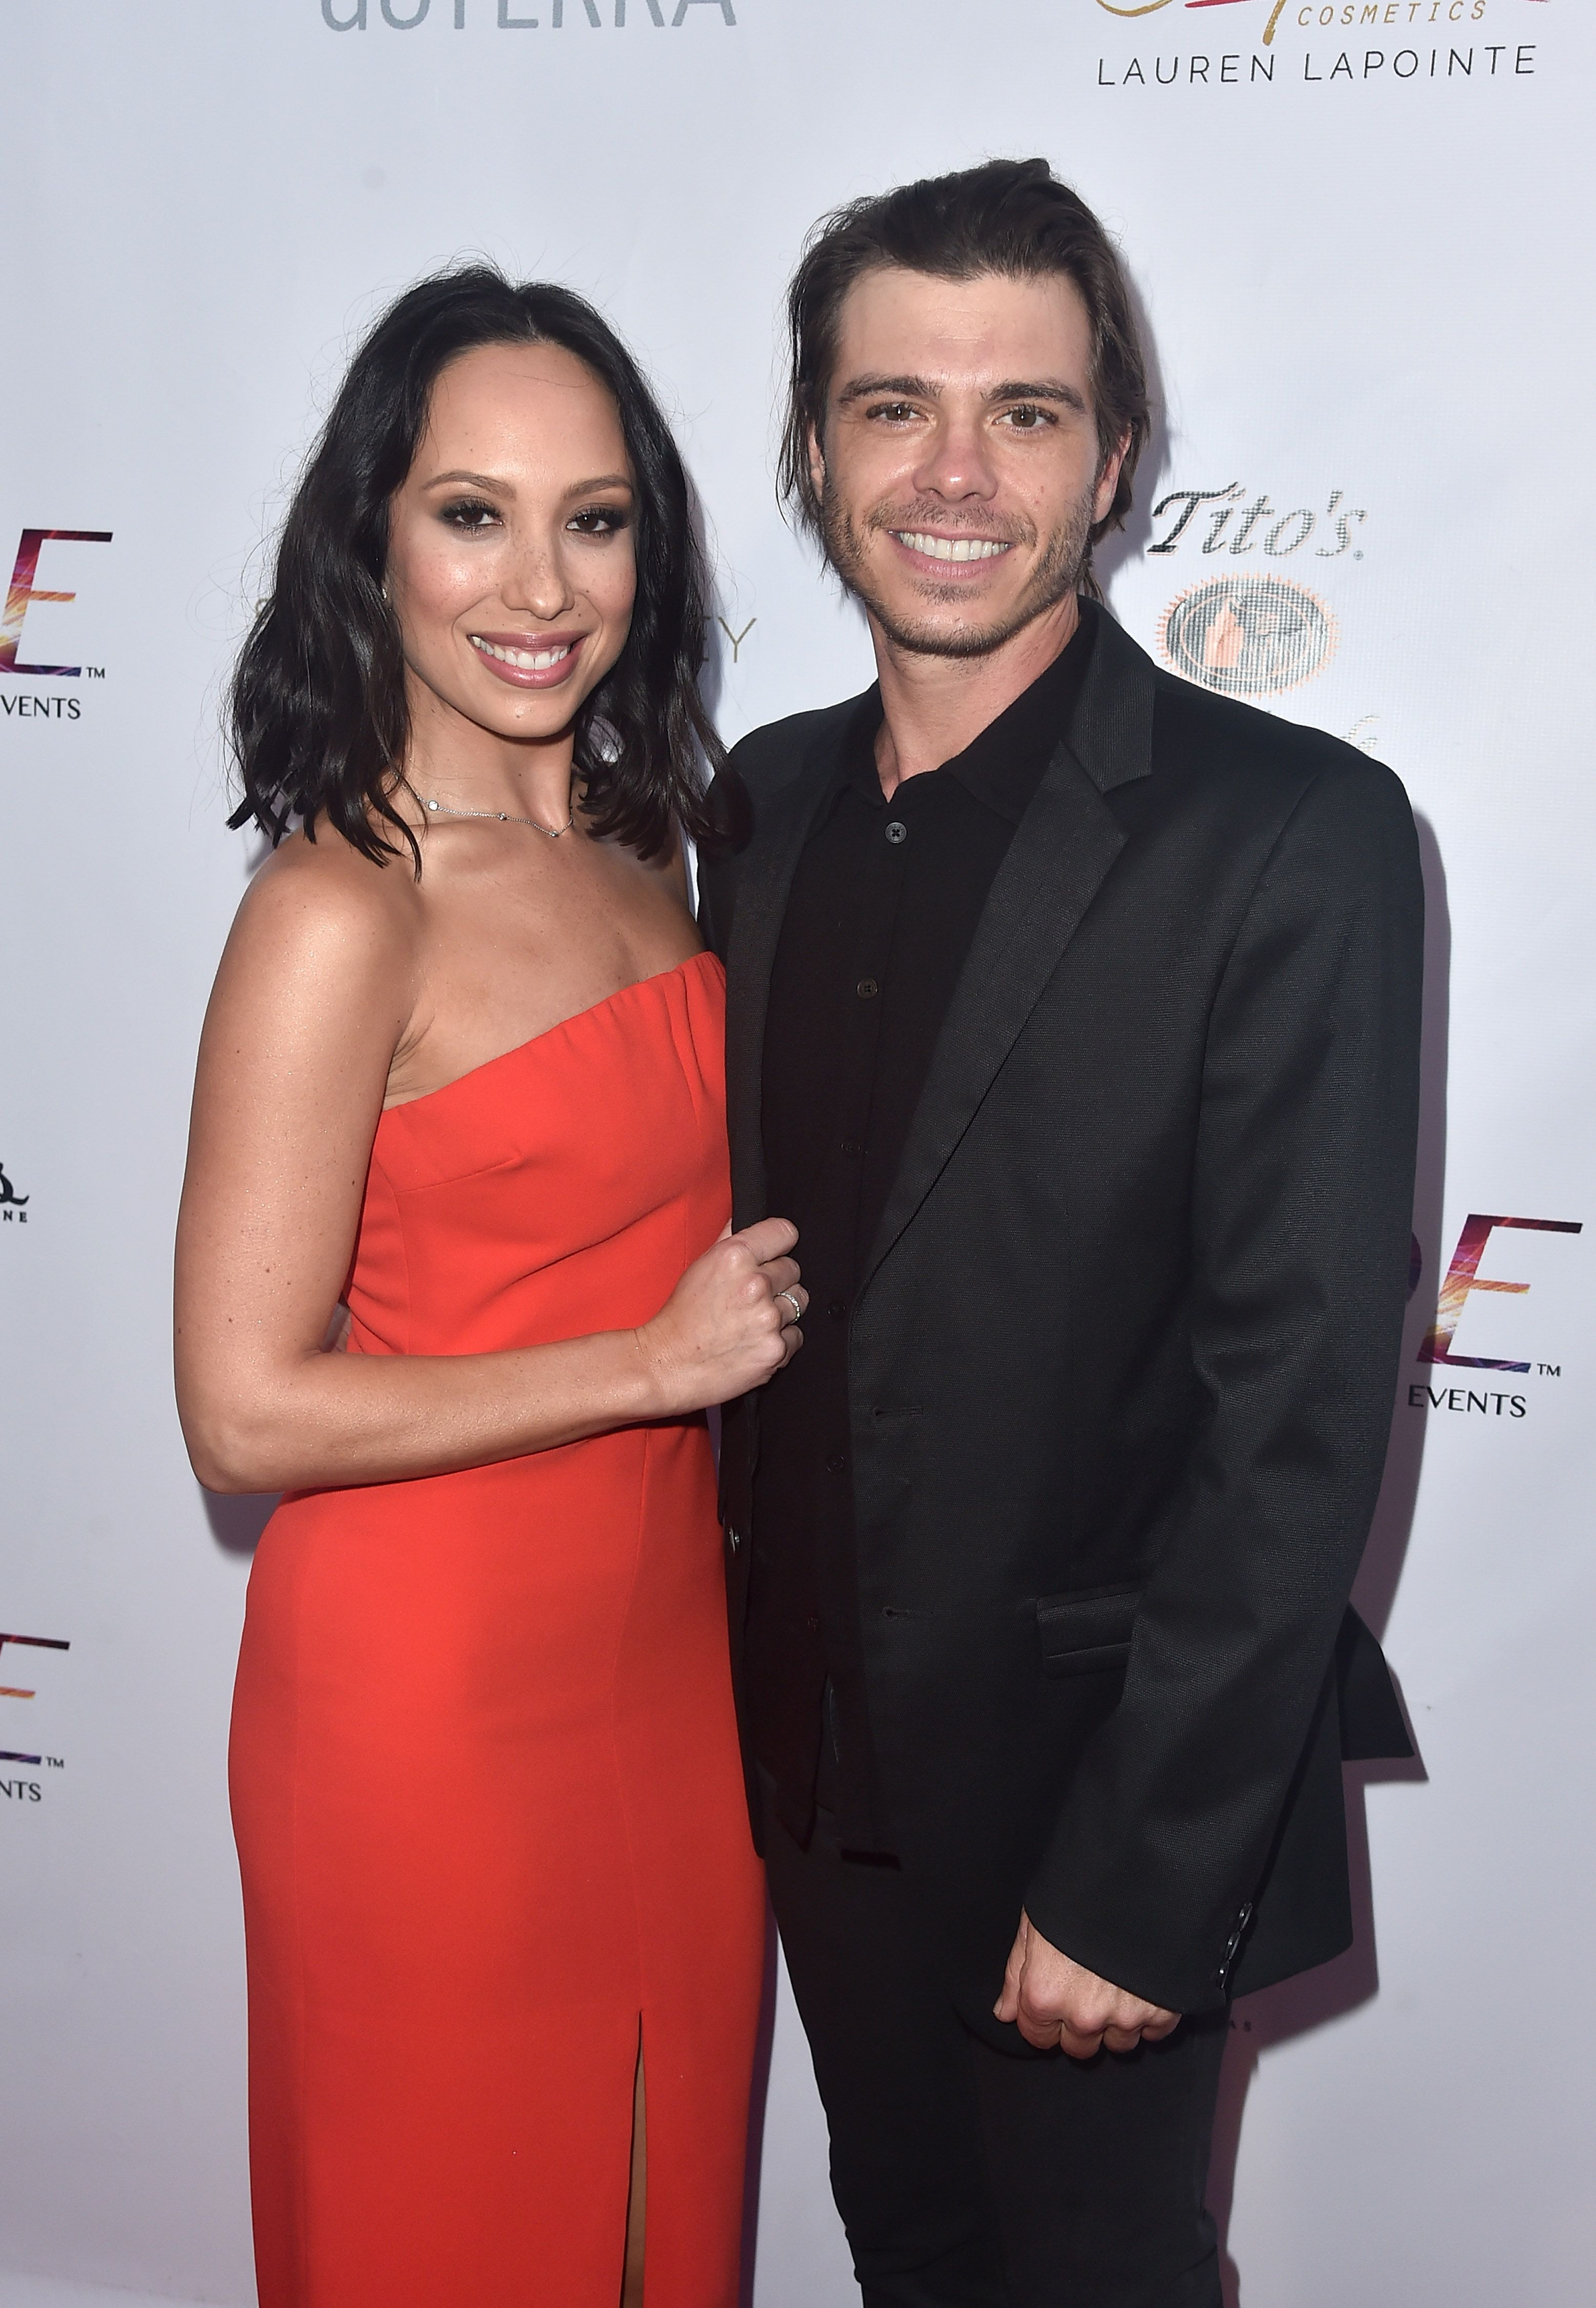 Dancing With The Stars' Cheryl Burke And Boy Meets World's Matthew Lawrence Are Married - Fame10